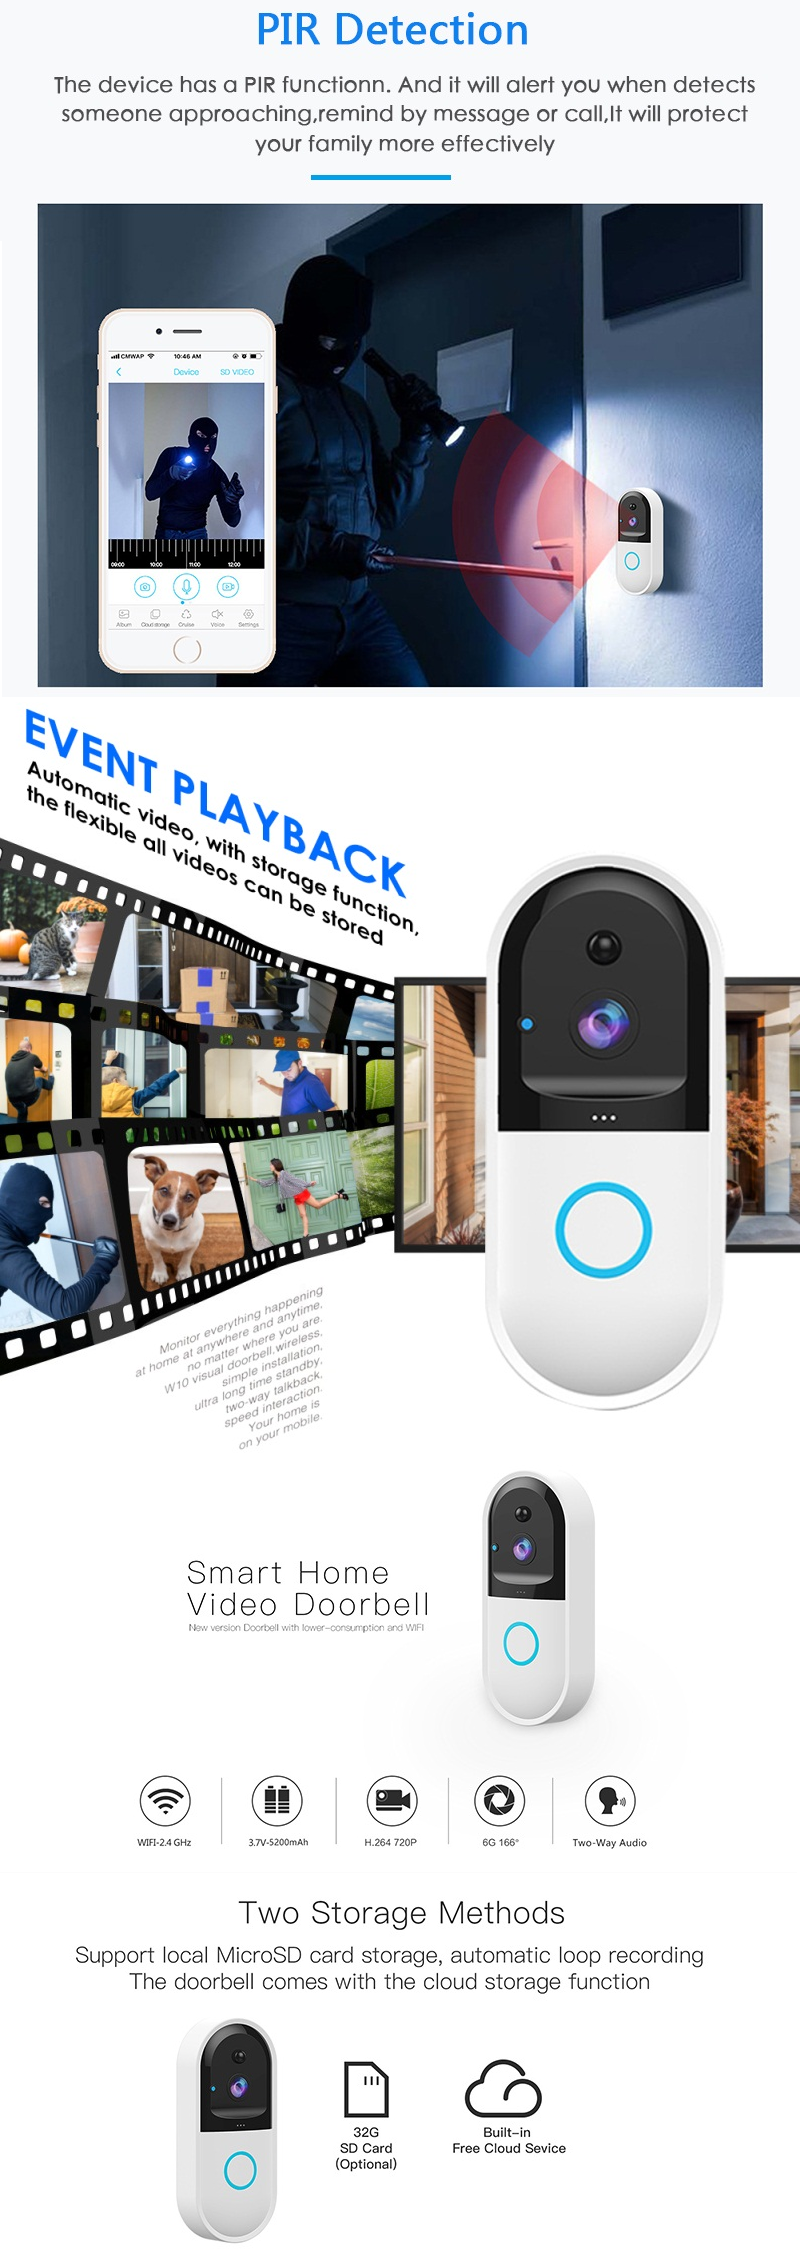 B50 Wifi Video Frontdoor Intercom This intelligent wifi frequency doorbell two-way audio communicate with visitors at your frontdoor wireless way videos video two Storage SD intrecoms Intercom Home gift frontdoors frontdoor front drow doors doorbells Doorbell Door Cloud Chimes Chime Card B50 Audio 720P